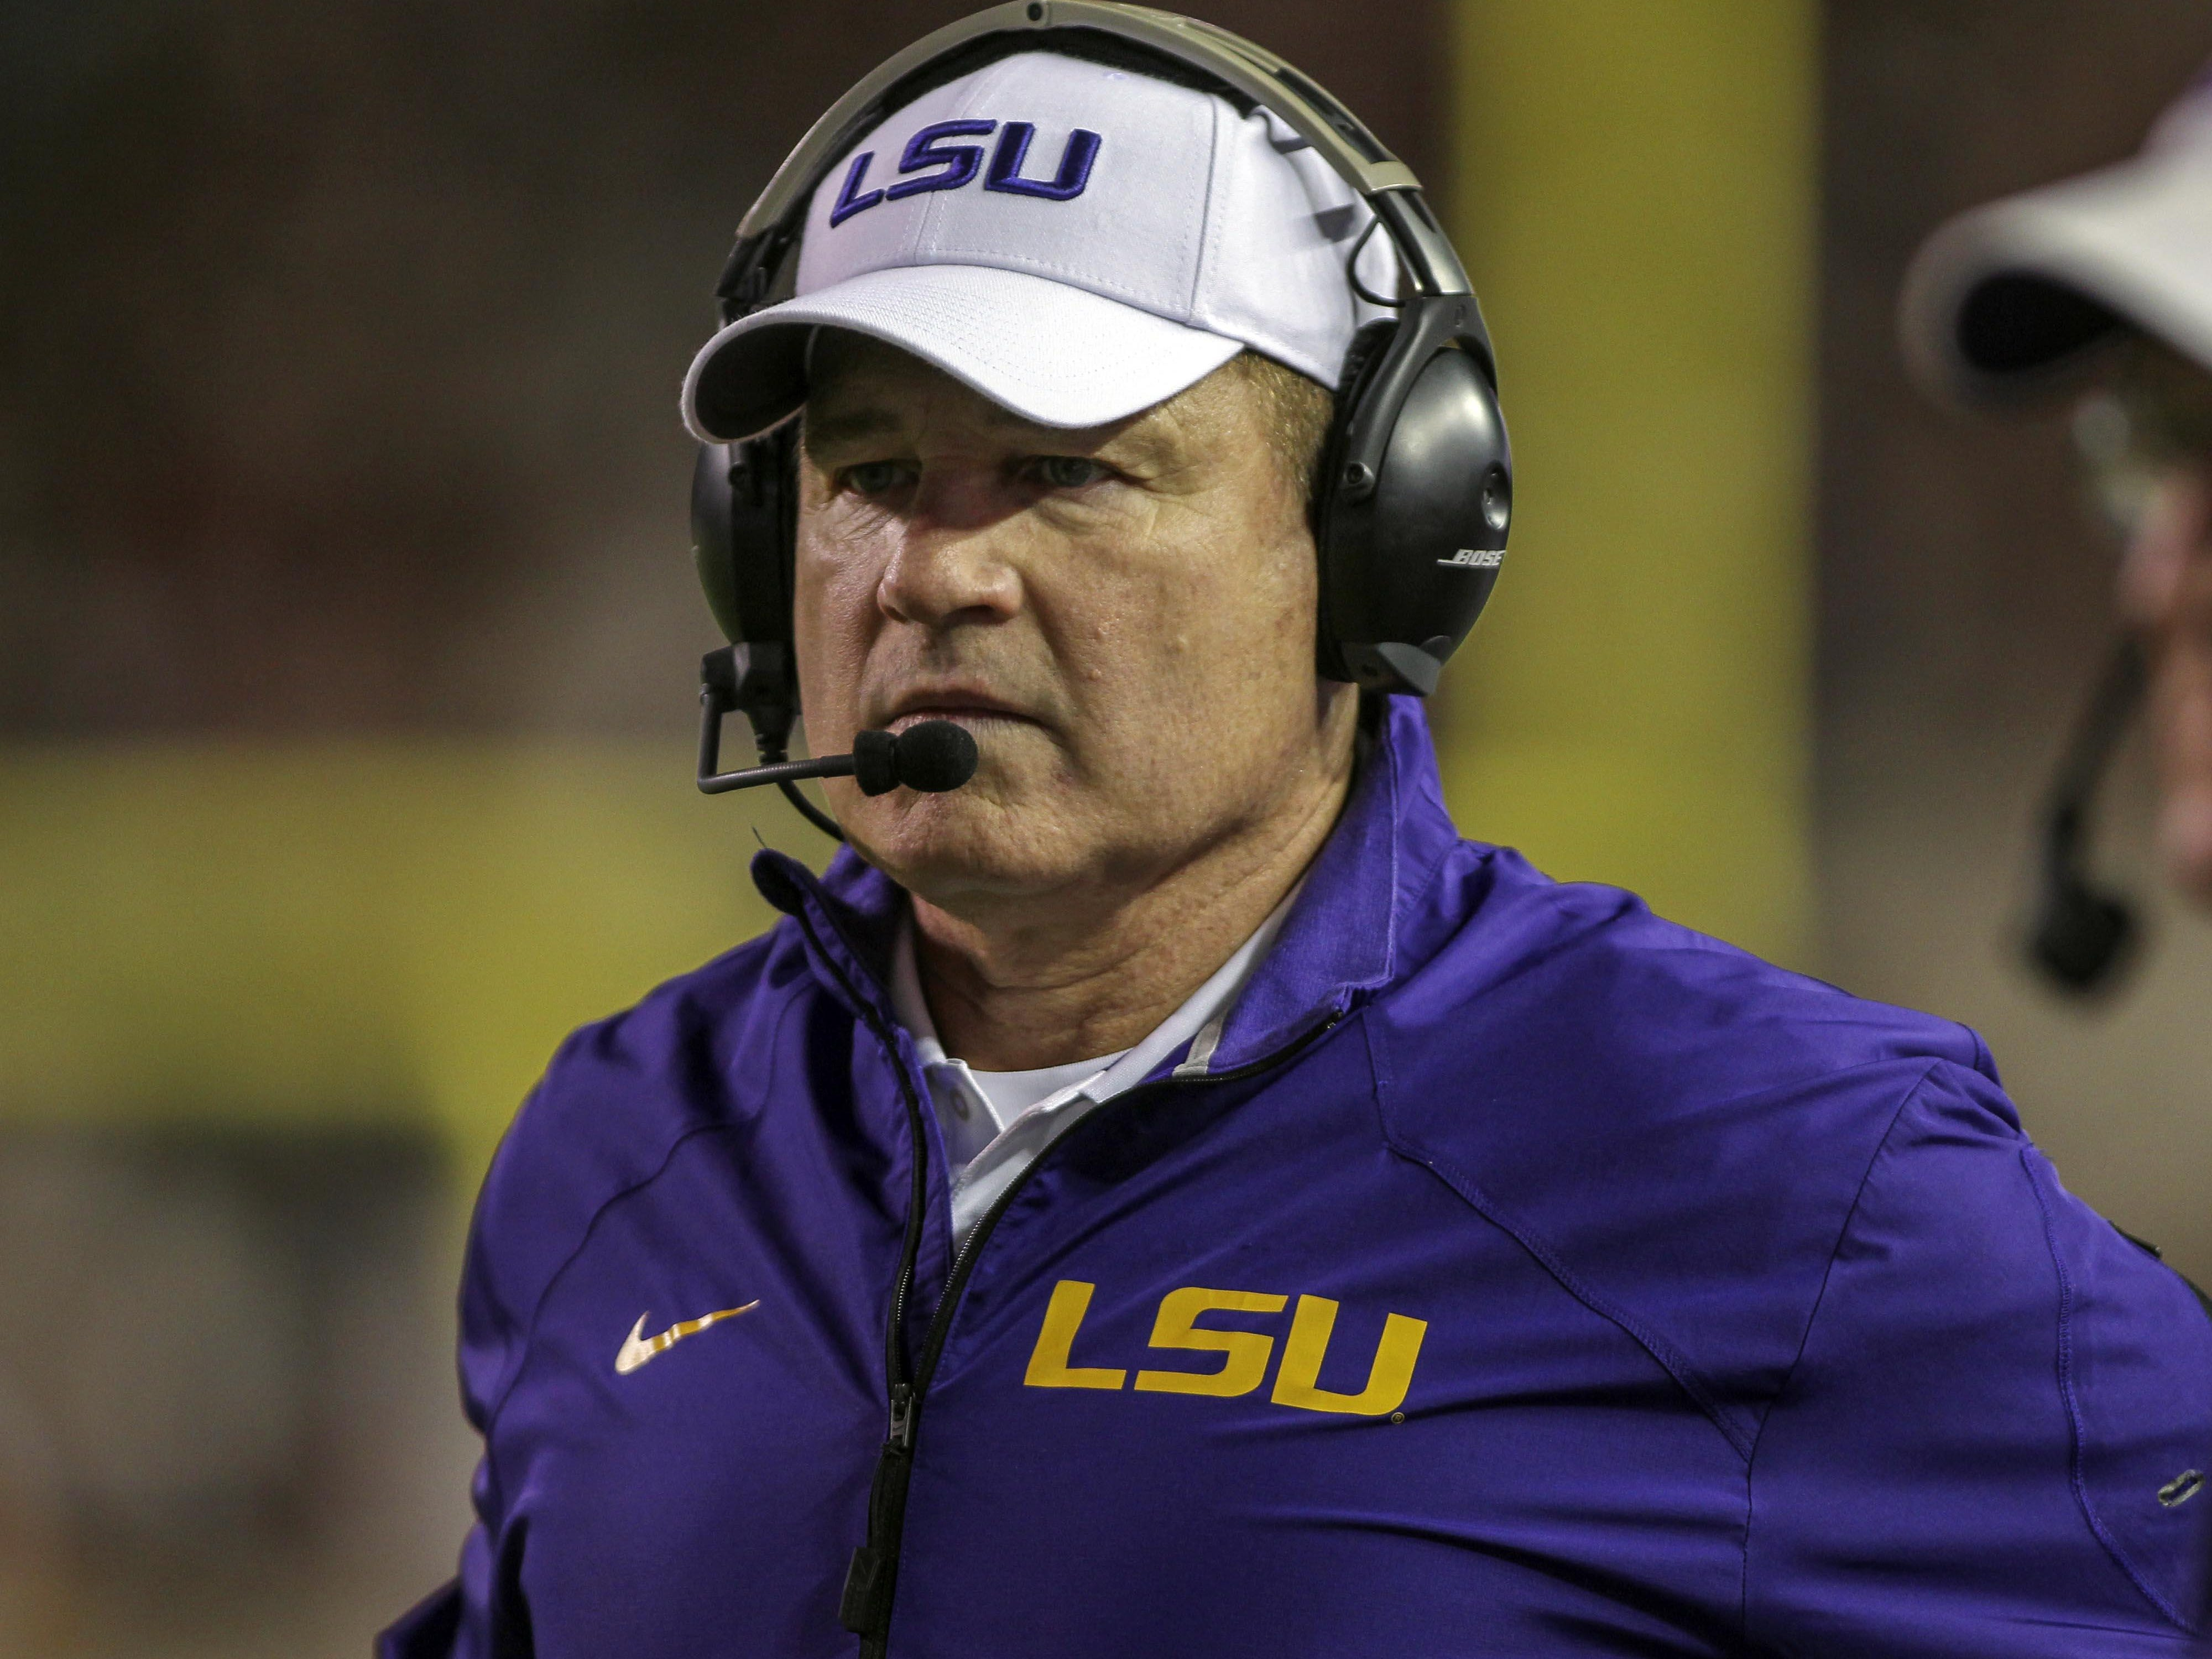 LSU Tigers head coach Les Miles says he won't save plays against McNeese